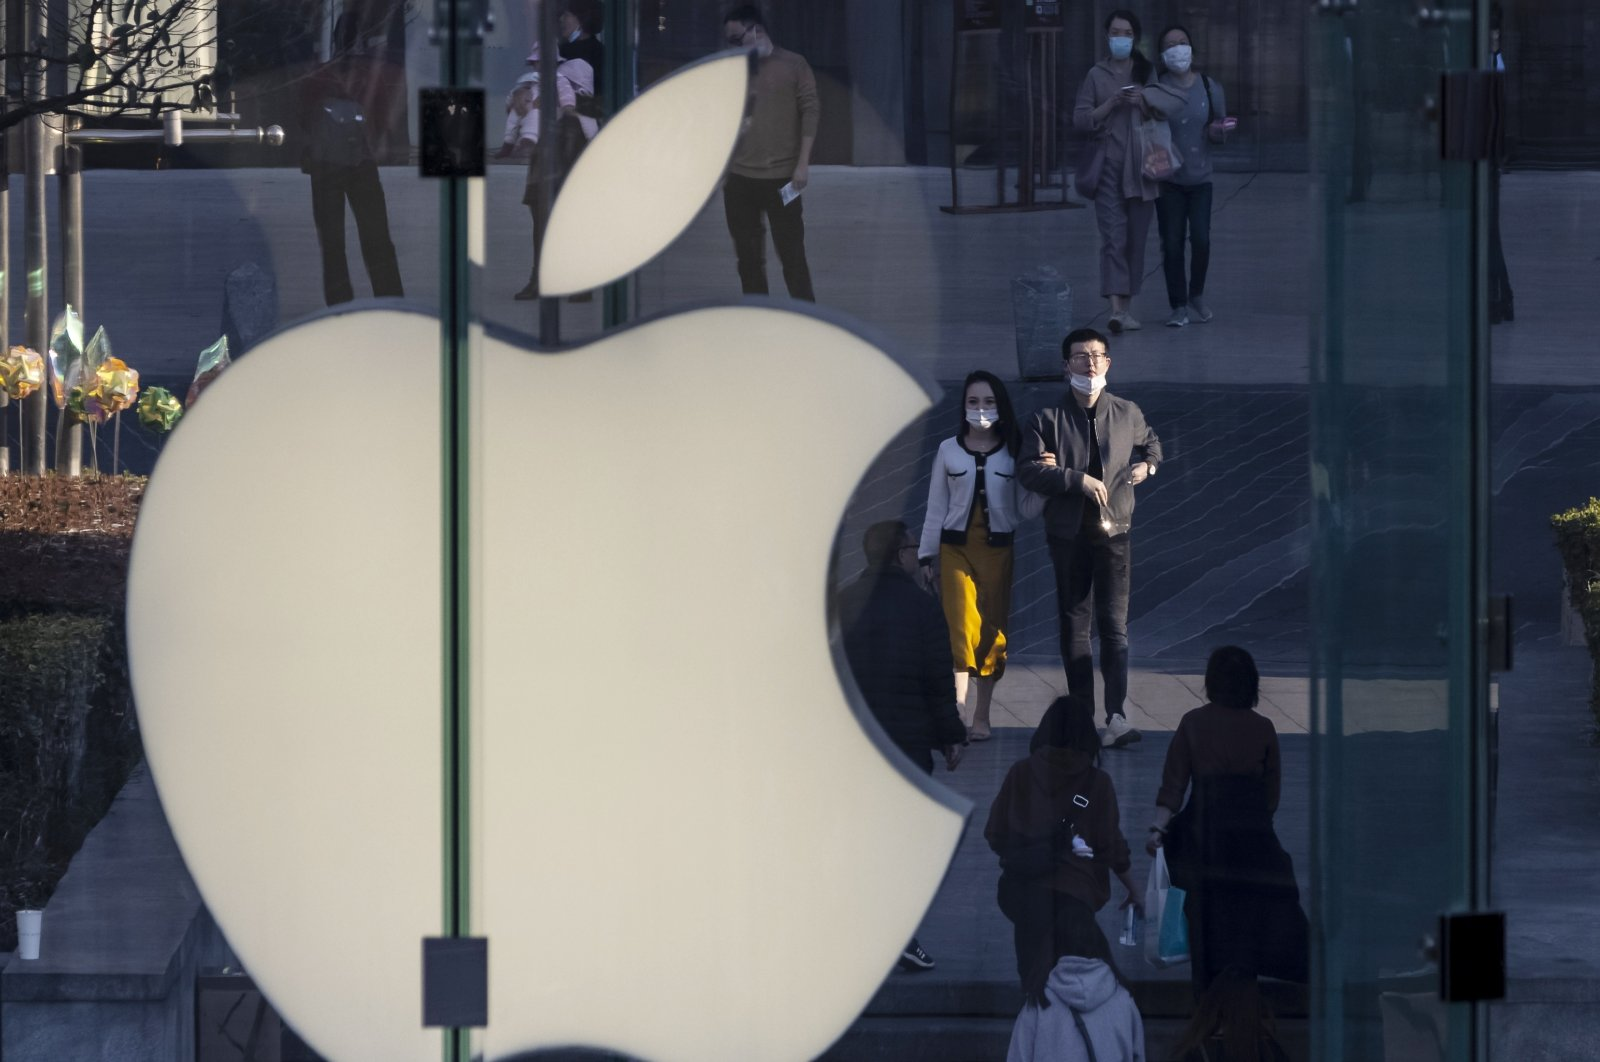 People walk next to the Apple logo in the financial district of Shanghai, China, Feb. 21, 2021. (EPA Photo)